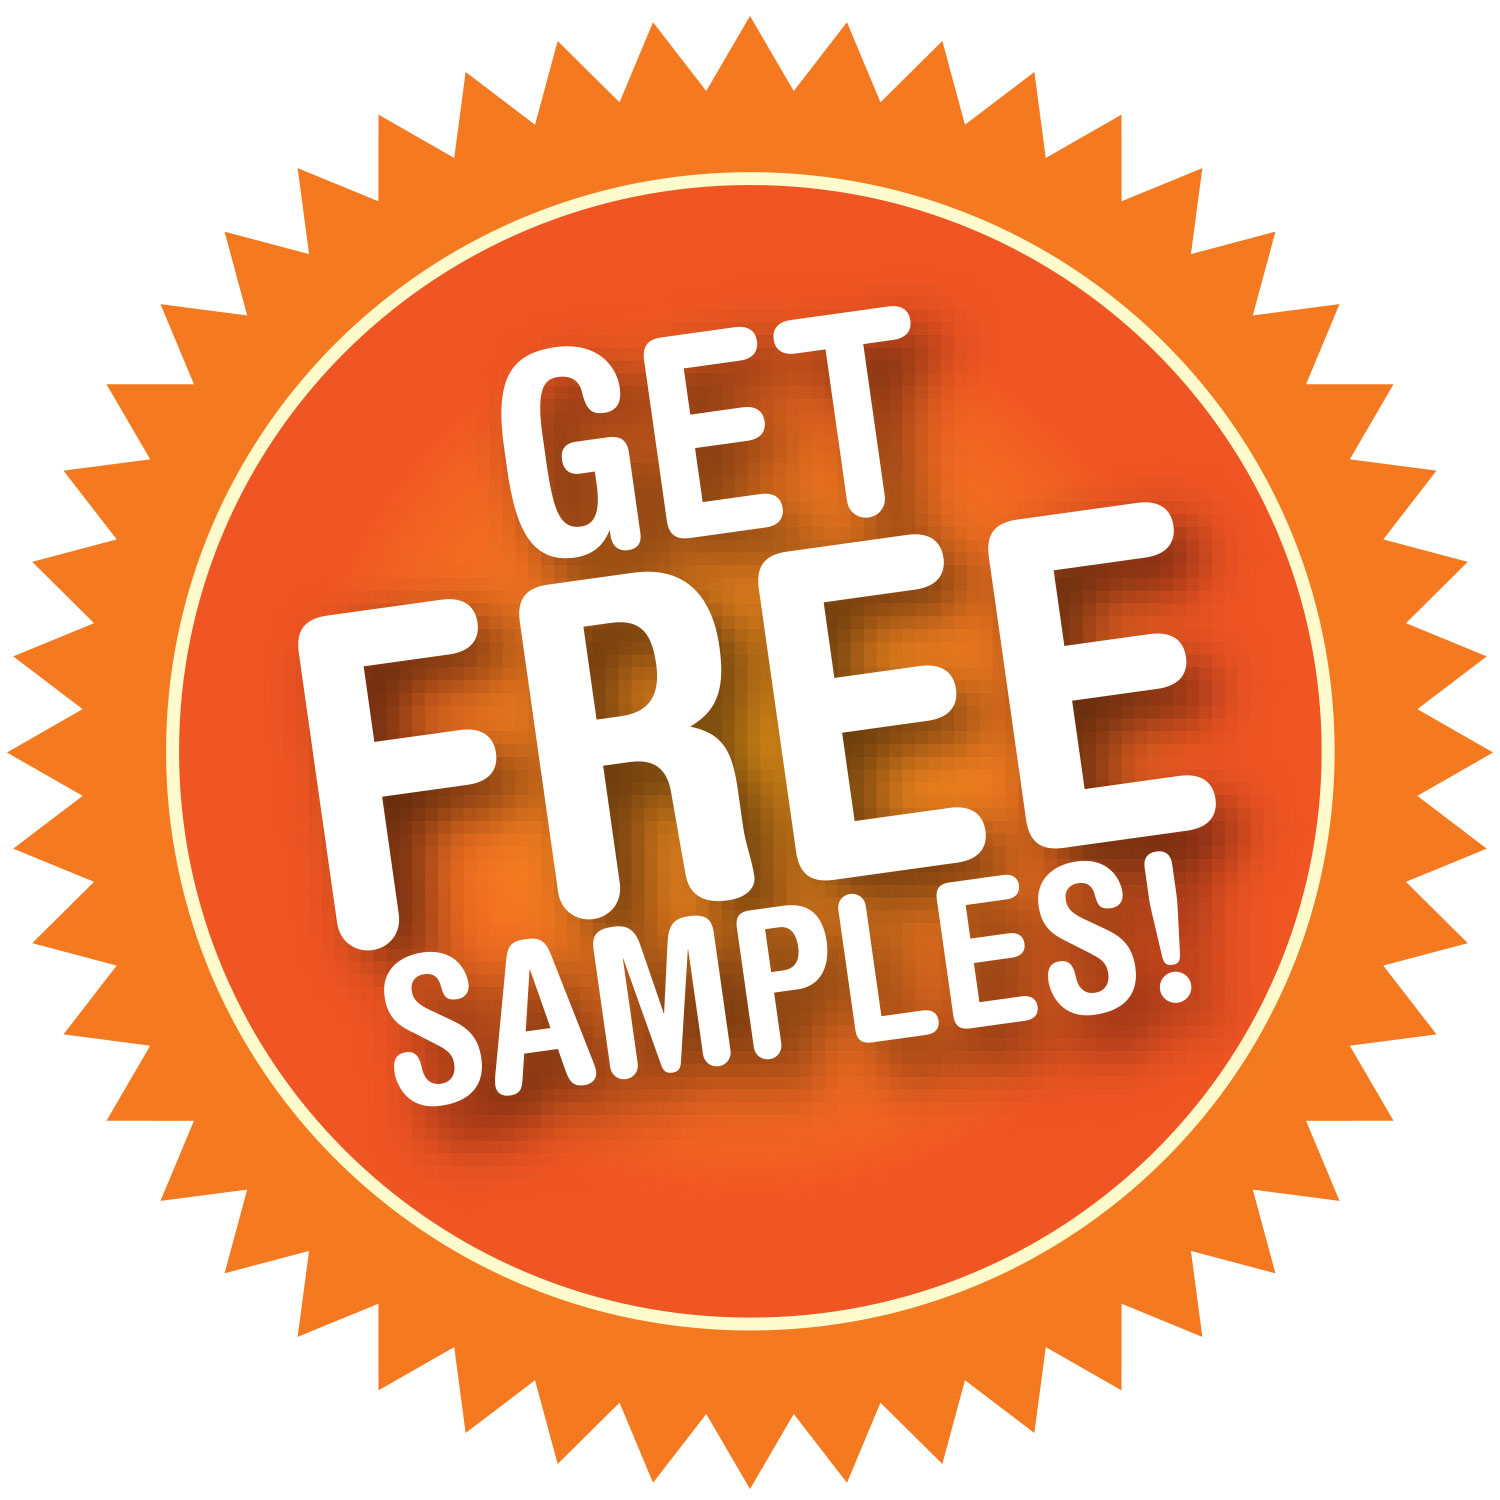 FREE Samples on any purchase